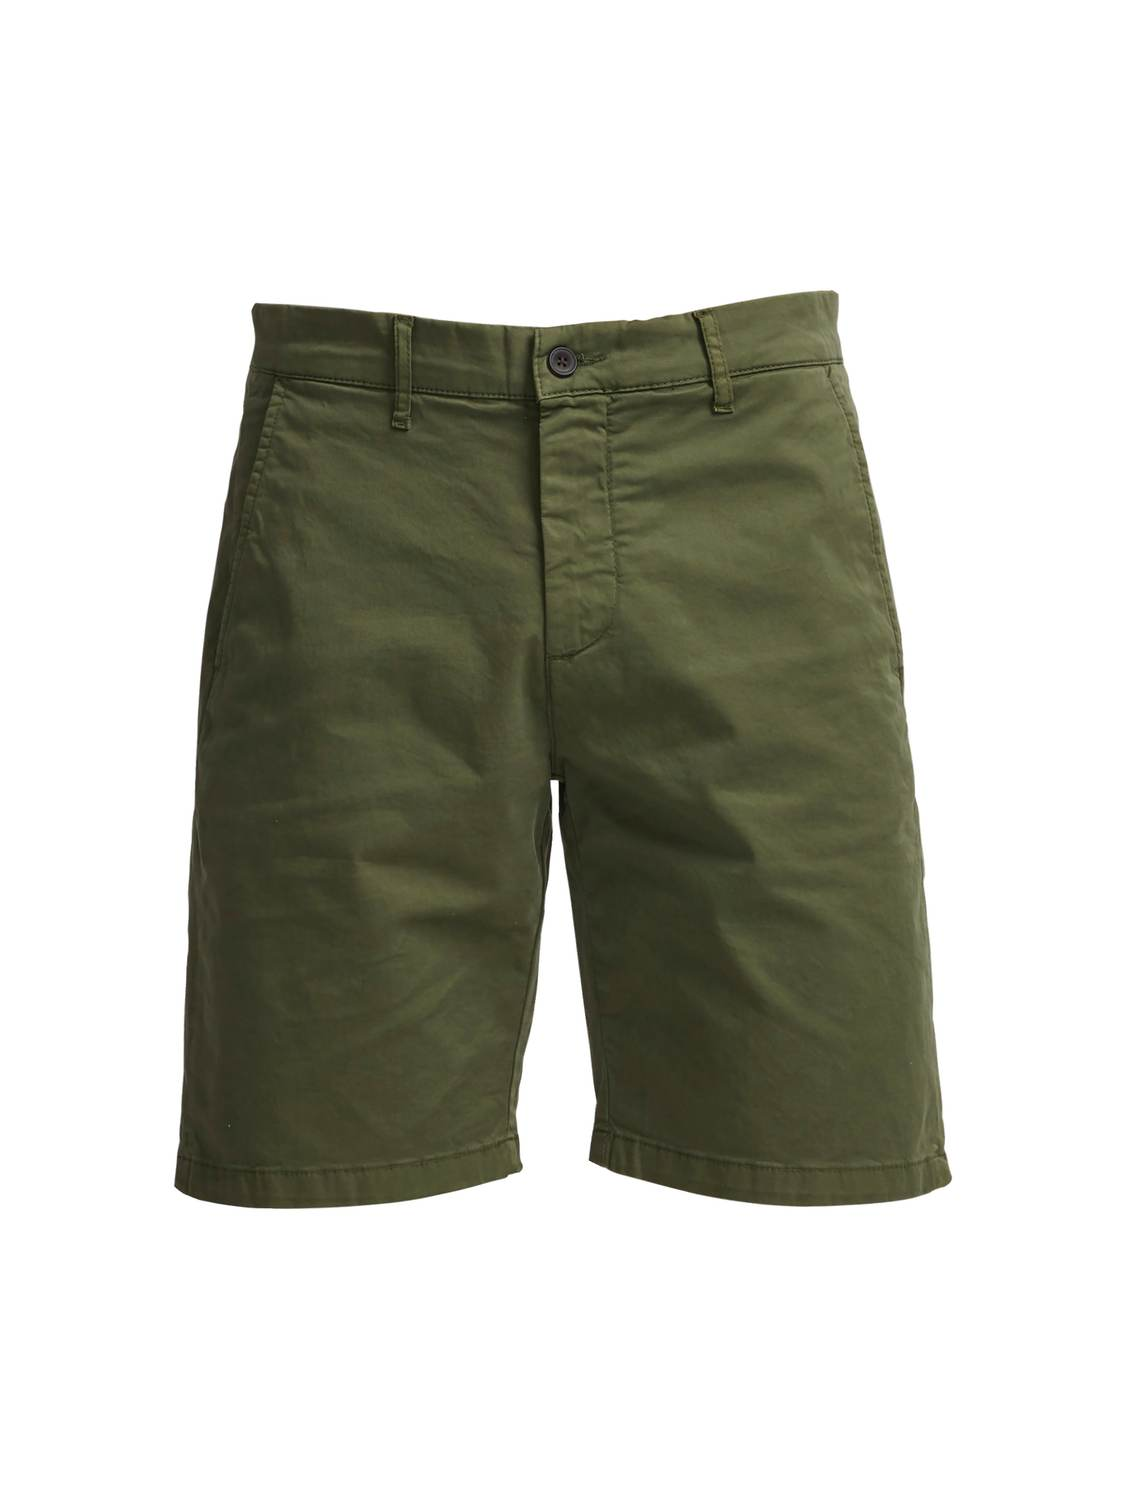 NN07 - CROWN SHORTS 1004 ARMY | GATE 36 HOBRO